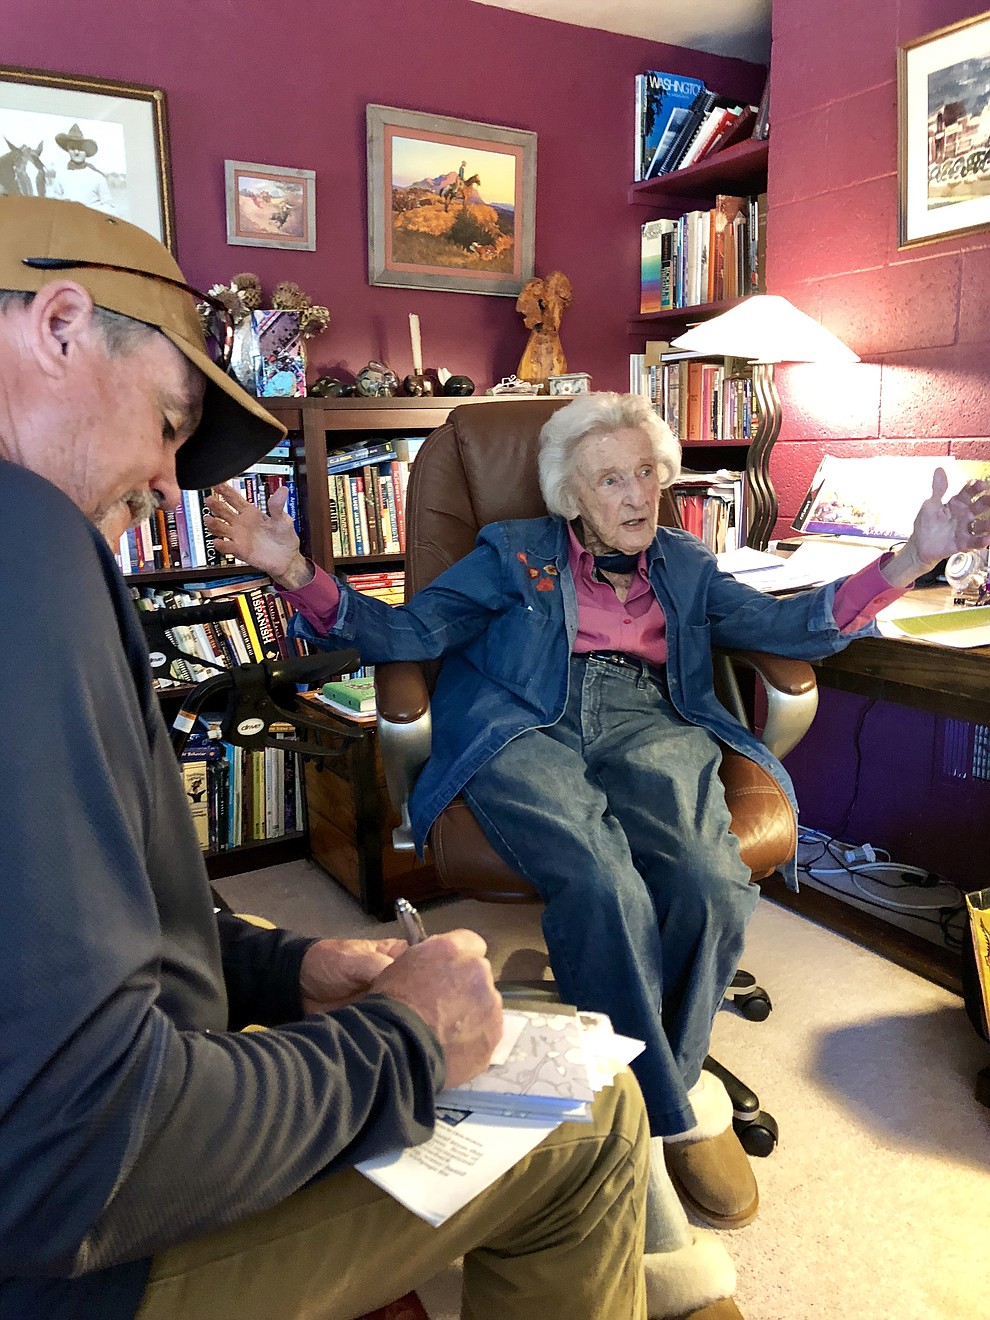 Longtime Open Space Alliance President Elisabeth Ruffner, then 98, talked with City of Prescott Recreation Services Director Joe Baynes on May 16, 2018, about the dissolution of the Open Space Alliance. (Cindy Barks/Courier)